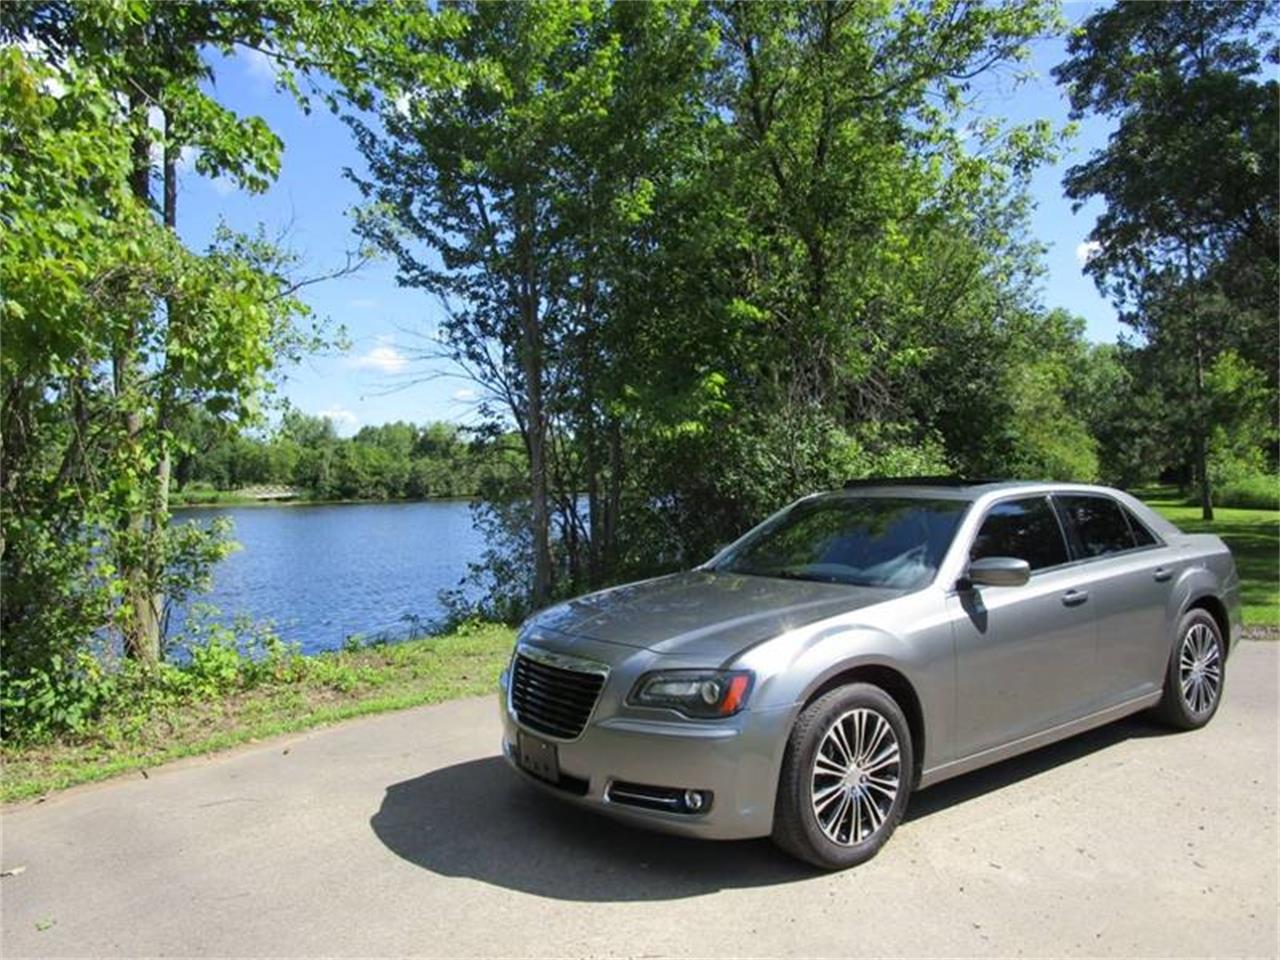 2012 Chrysler 300 for sale in Stanley, WI – photo 30